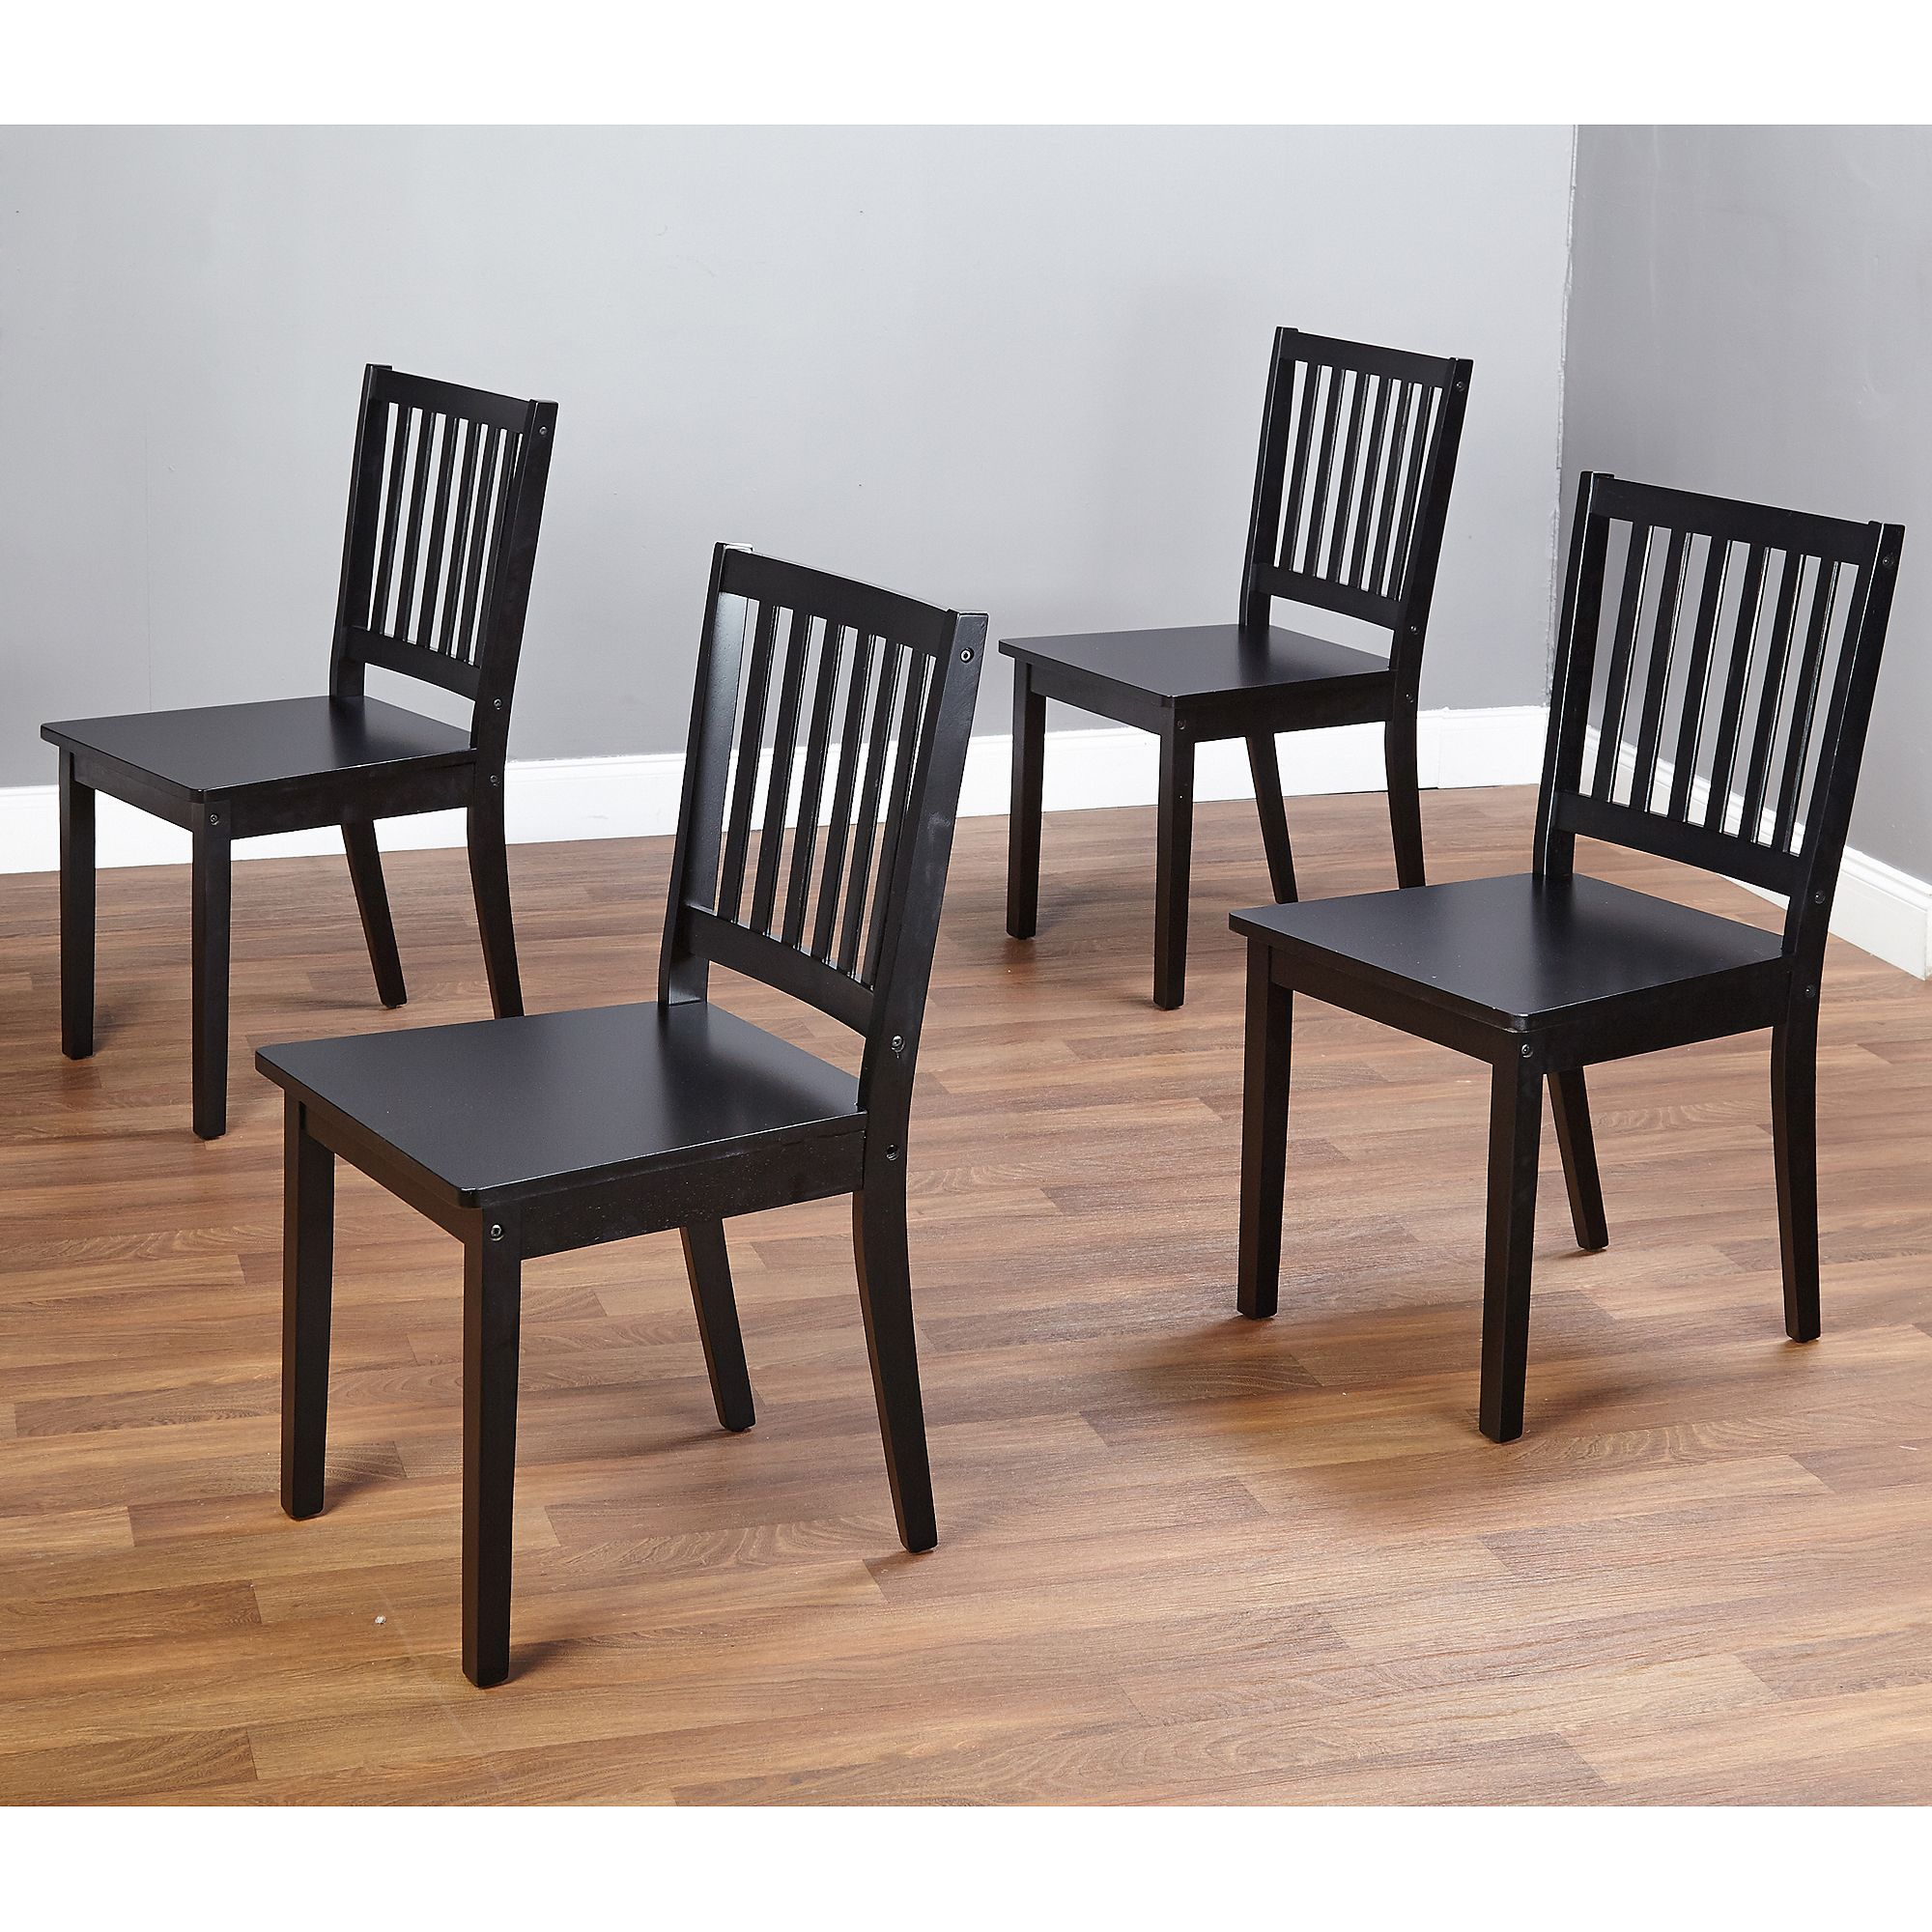 Missionleopoldsidechairsetof2  Dining Room Tables Simple Rolling Kitchen Chairs Design Decoration